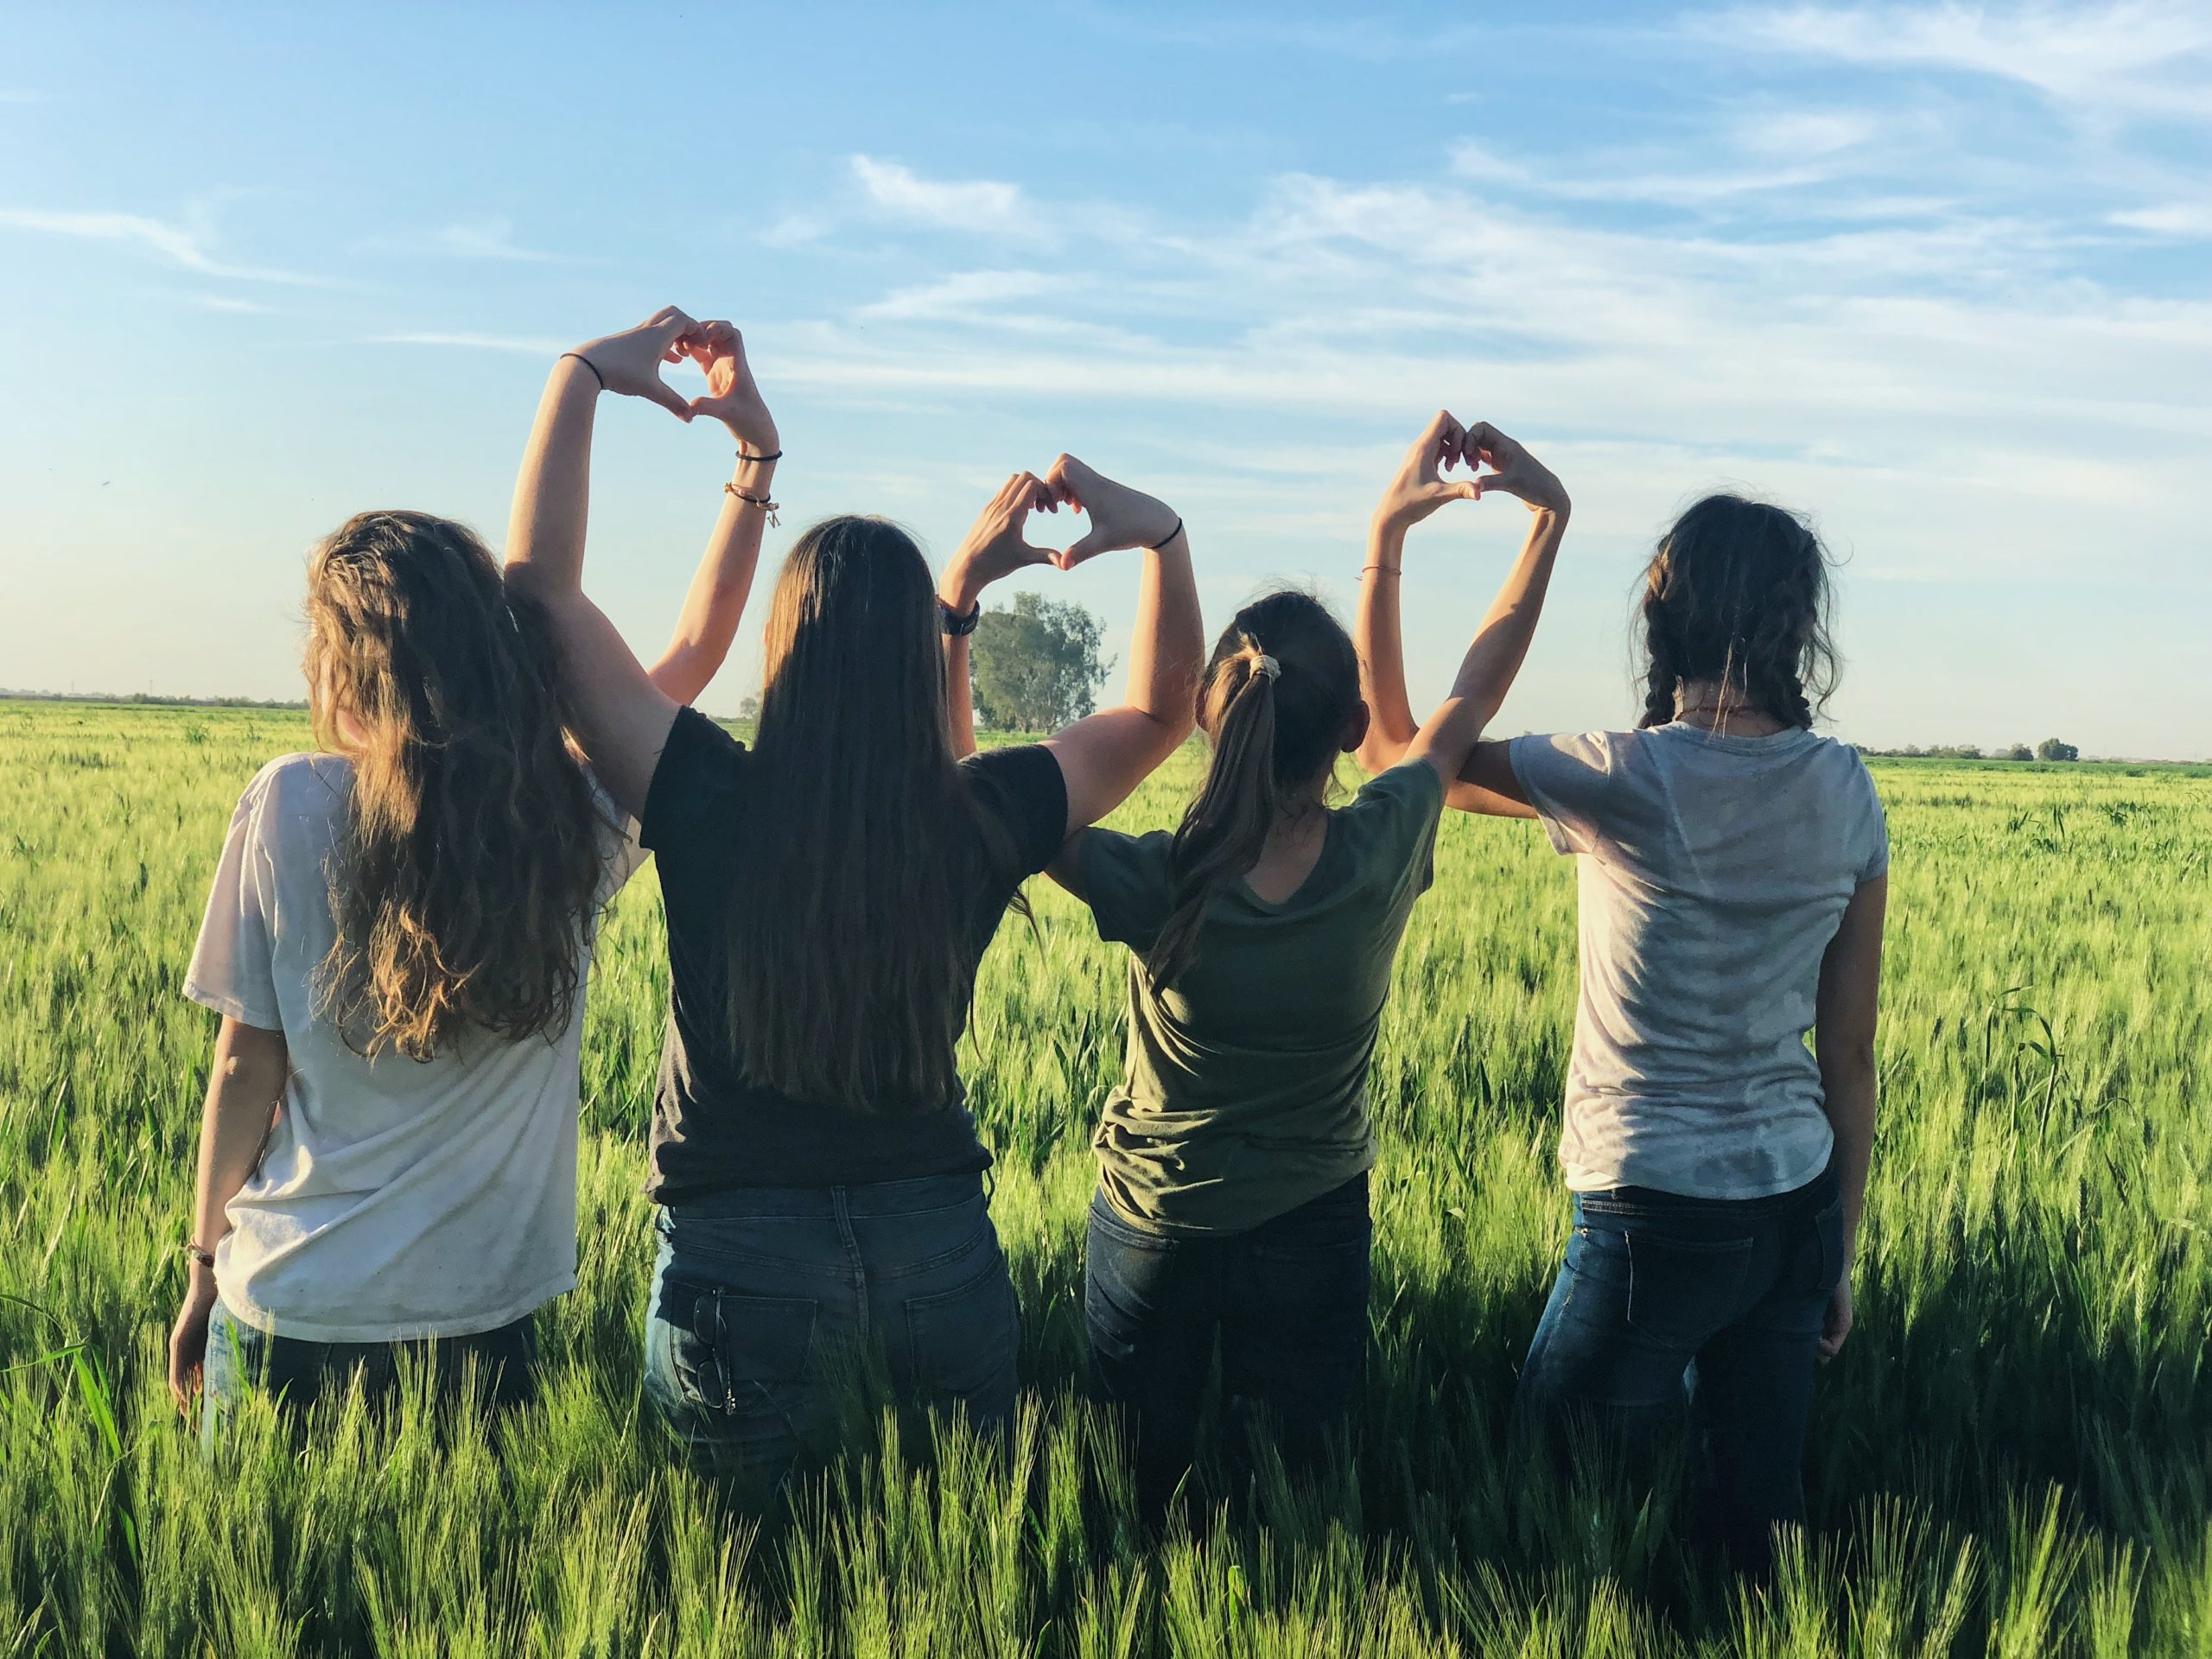 women standing together in a field